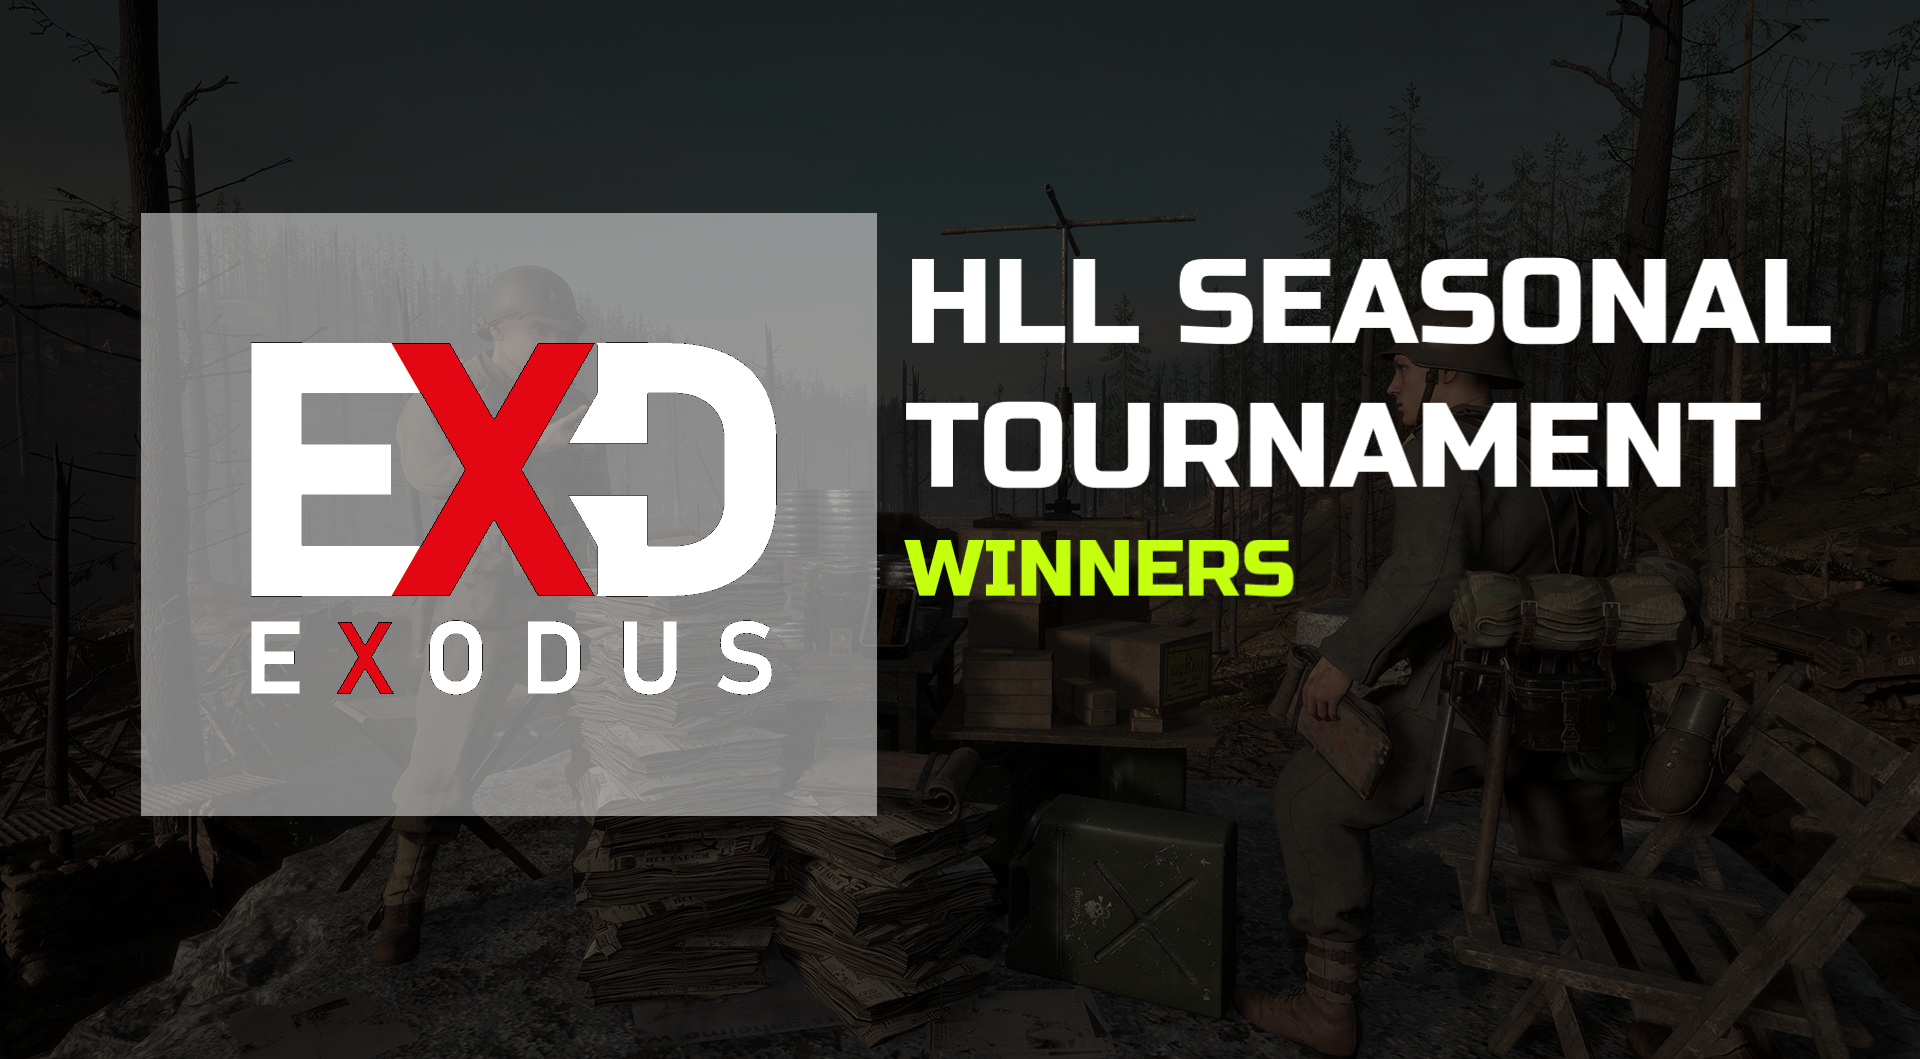 [EXD] are Hell Let Loose Tournament Winners!